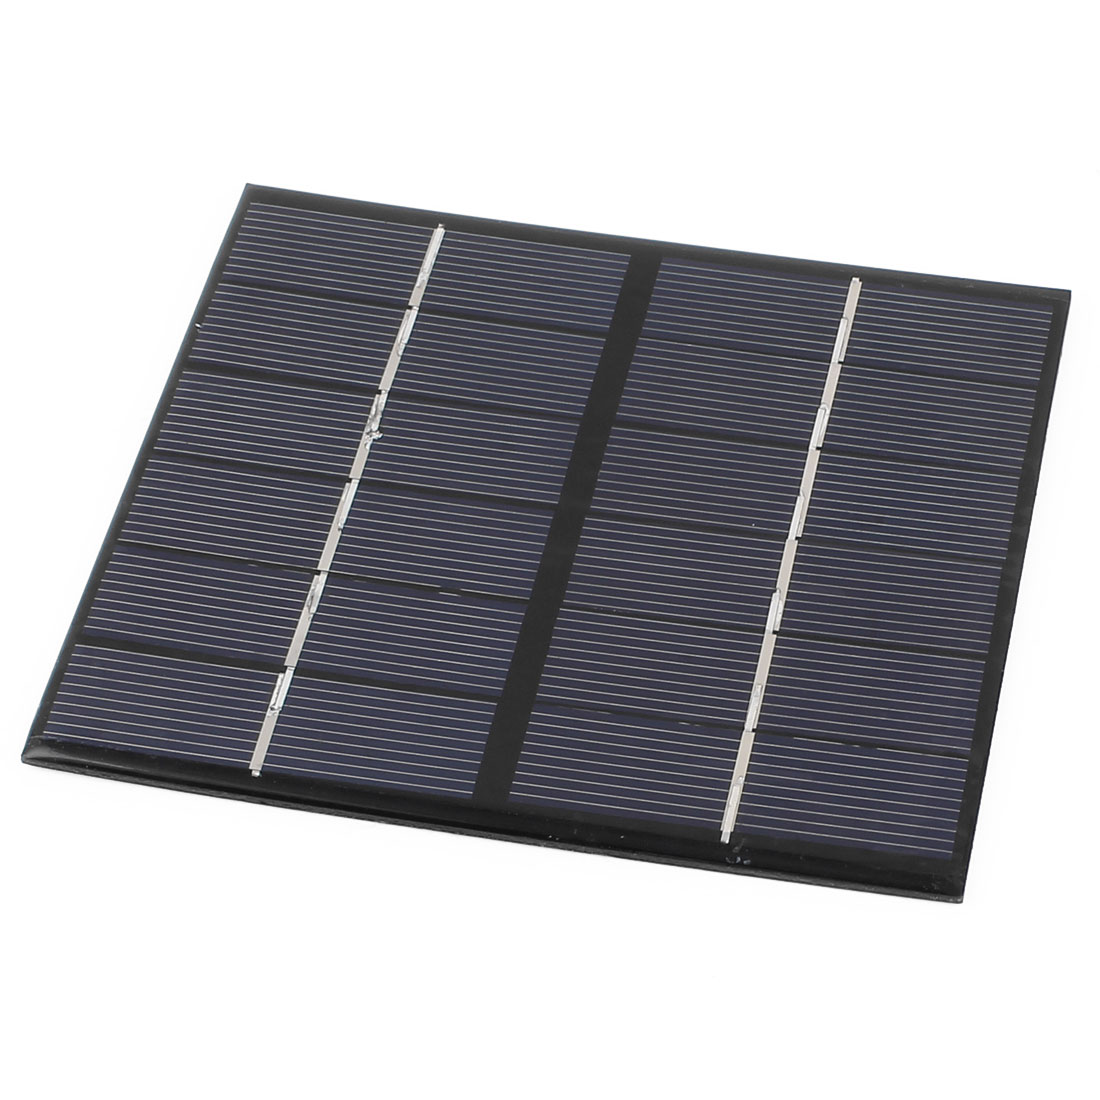 DC 6V 2.5W Rectangle Energy Saving Solar Cell Panel Module 115x130mm for Charger